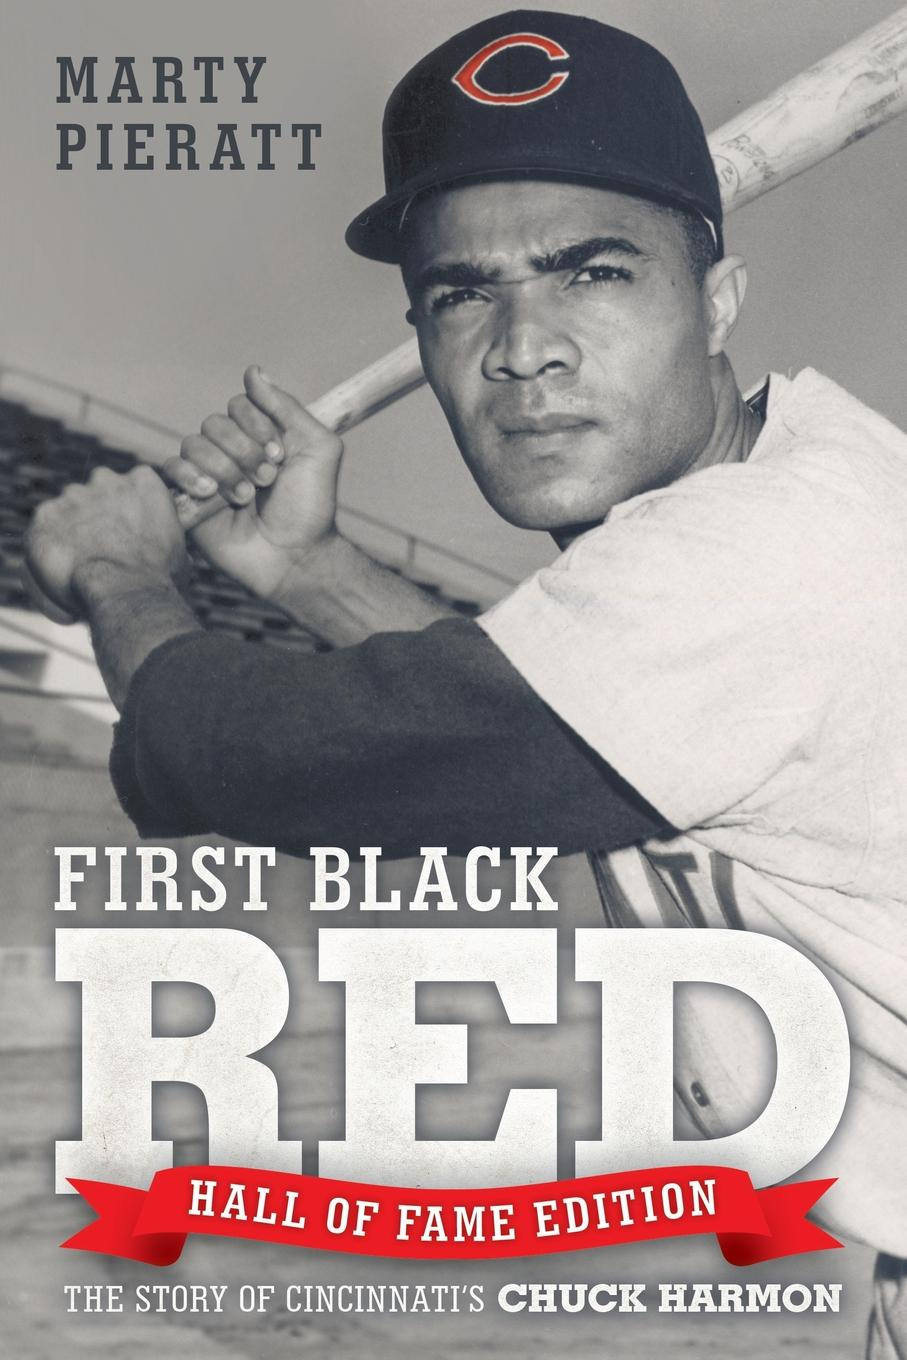 Marty Pieratt First Black Red. Hall of Fame Edition